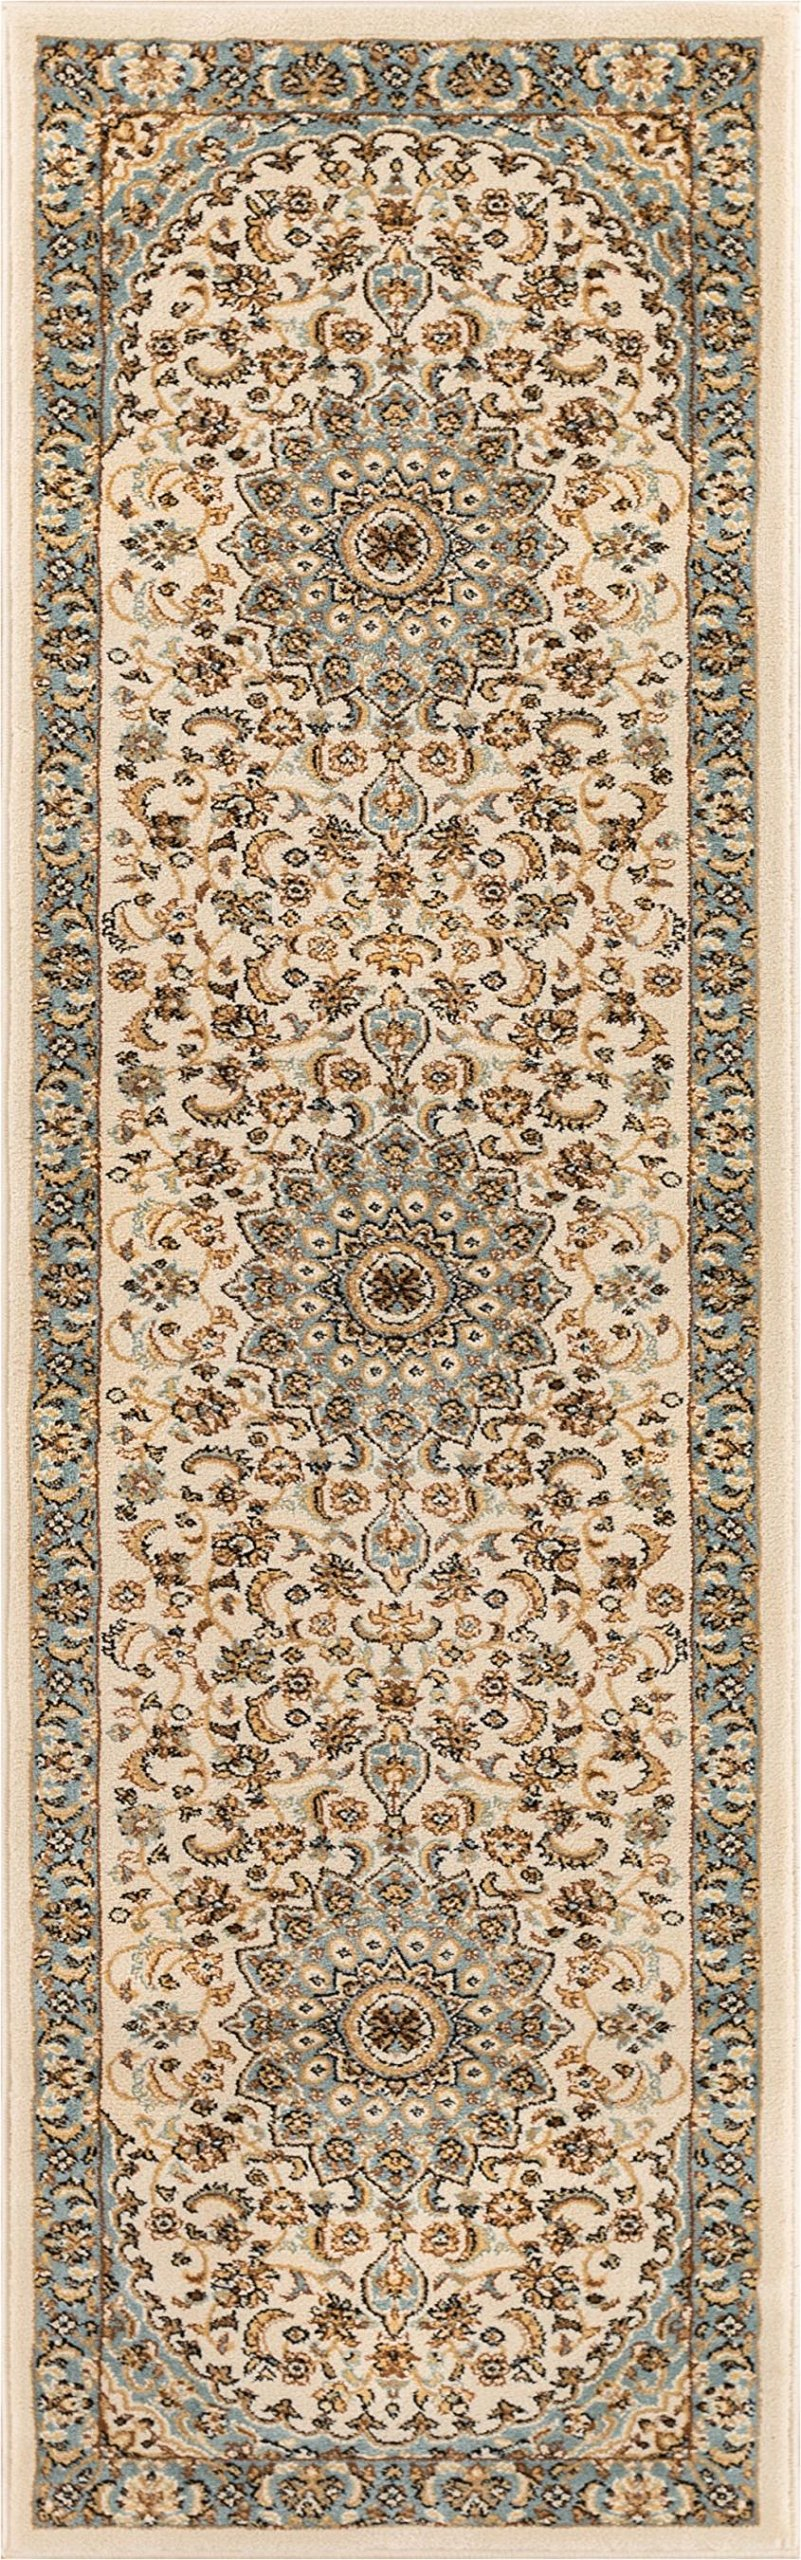 Well Woven 36422 Timeless Aviva Traditional French Country Oriental Rug x, 2'3'' x 7'3'' Runner, Ivory